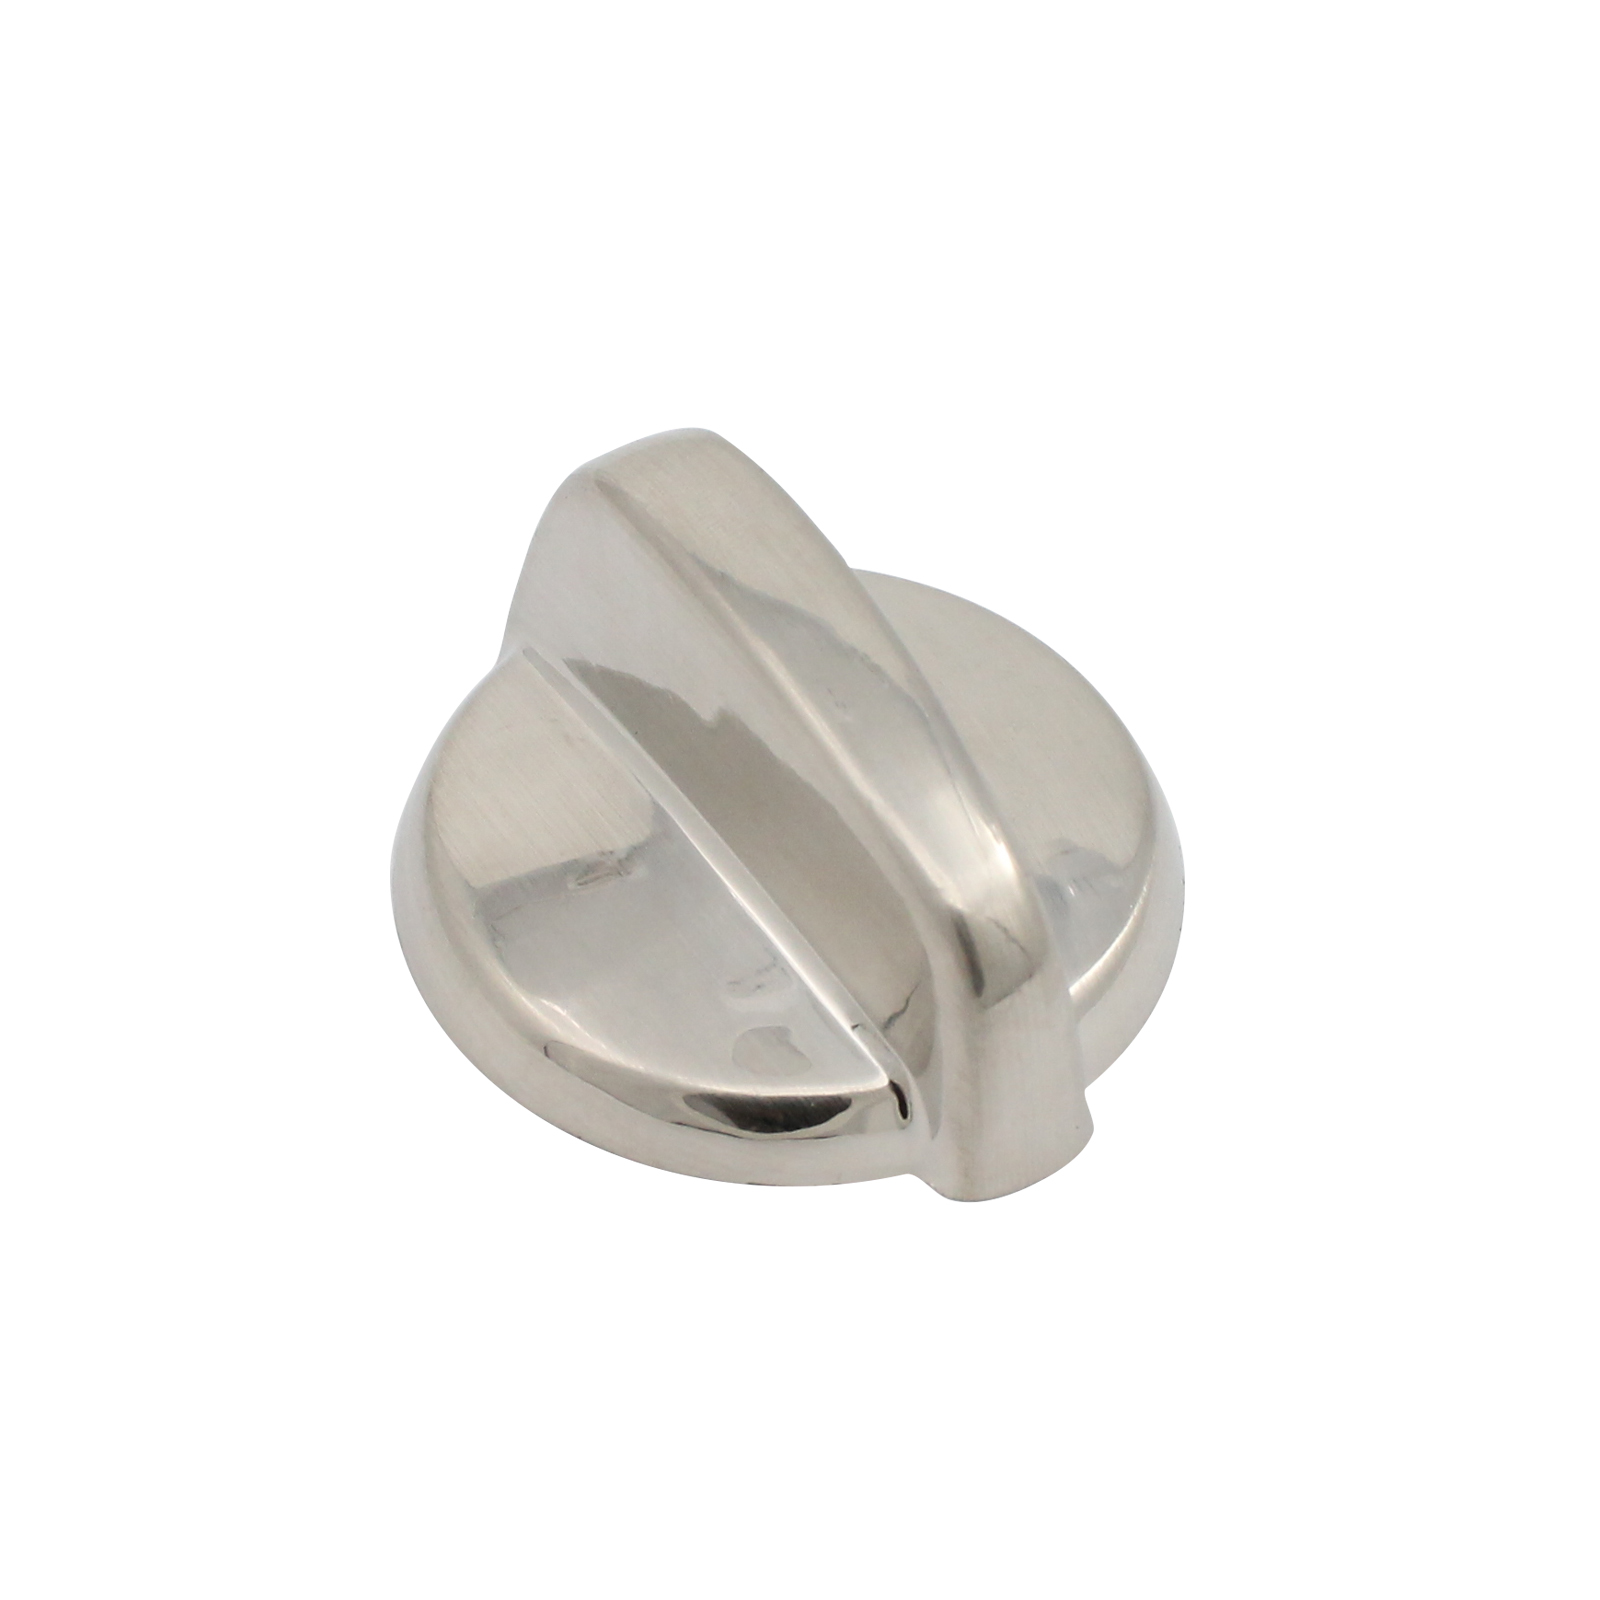 6 Pack Replacement Control Knob WB03T10284 Stainless Steel Finish for General Electric JB680SIT1SS Range - image 1 de 4